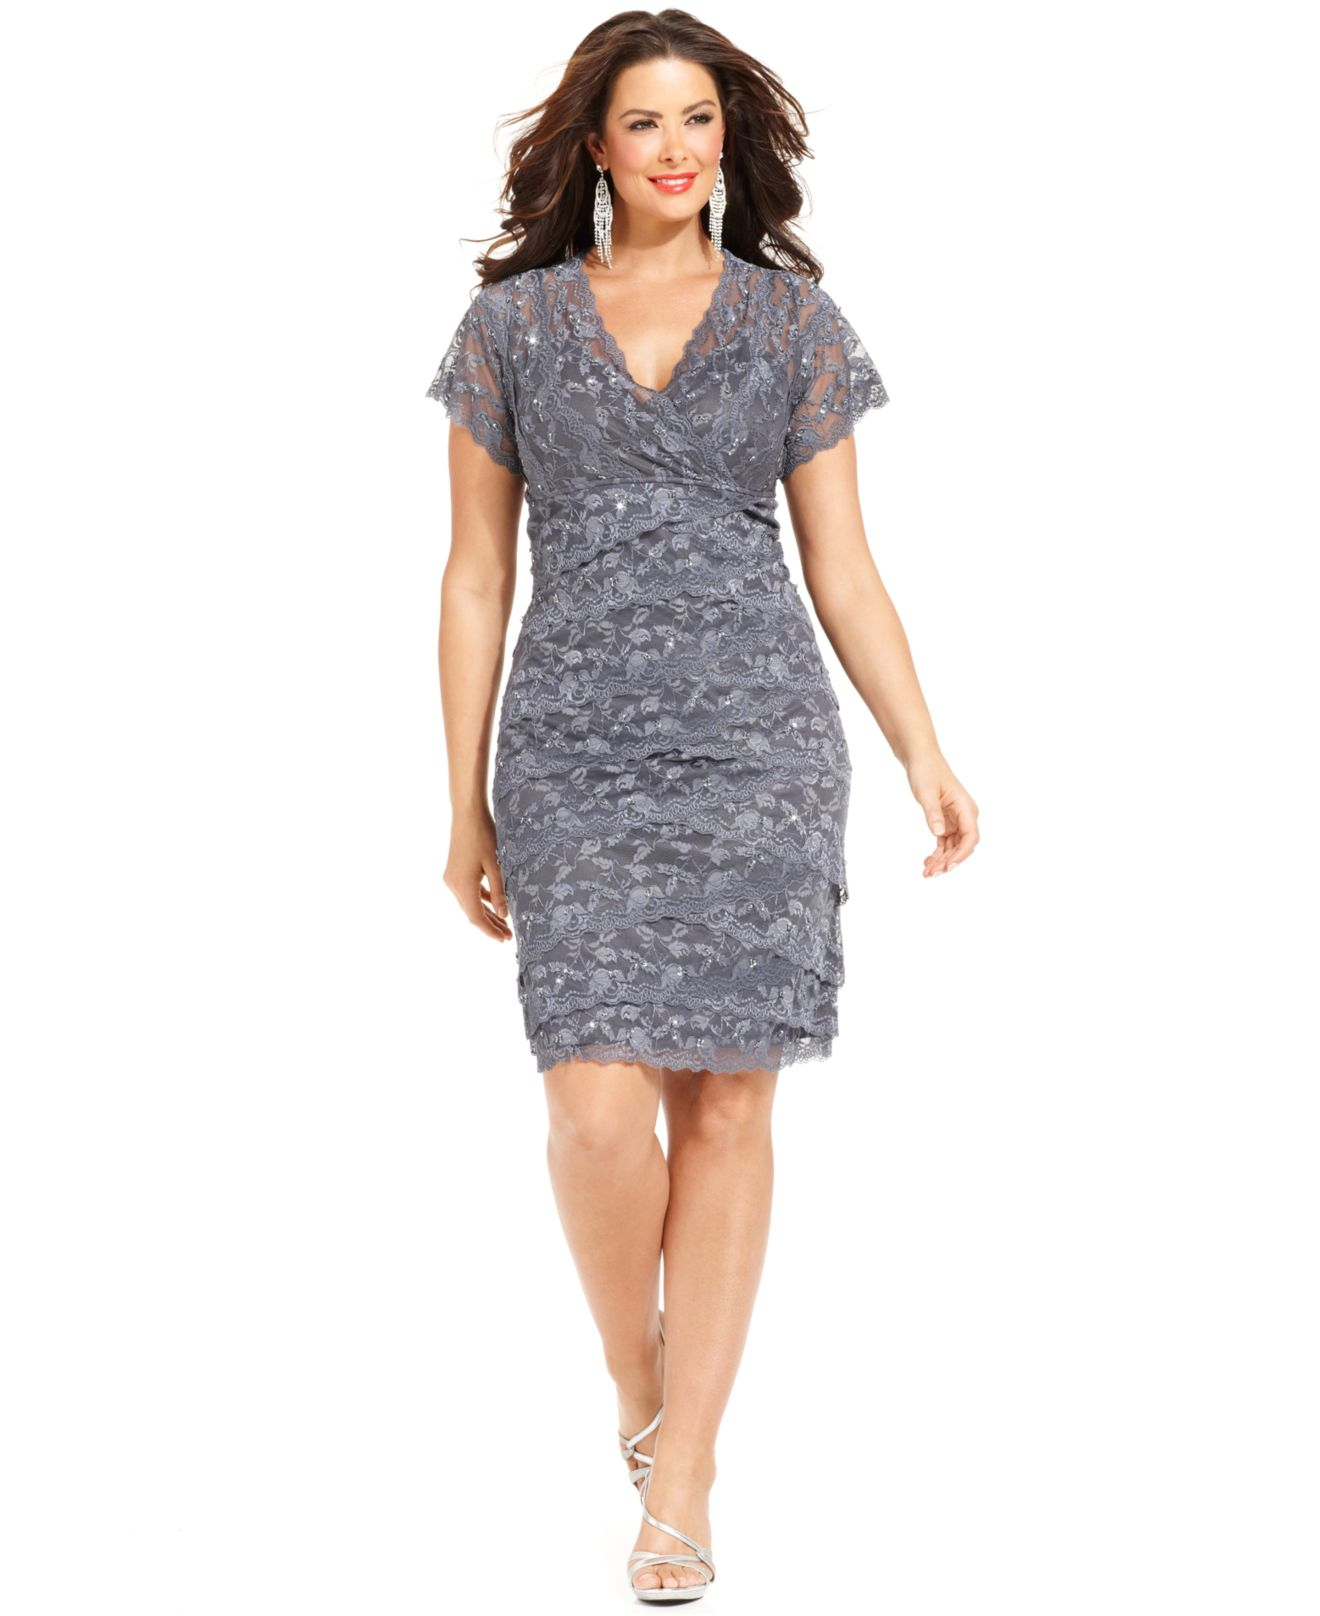 Lyst - Marina Plus Size Cap-sleeve Lace Cocktail Dress in Gray